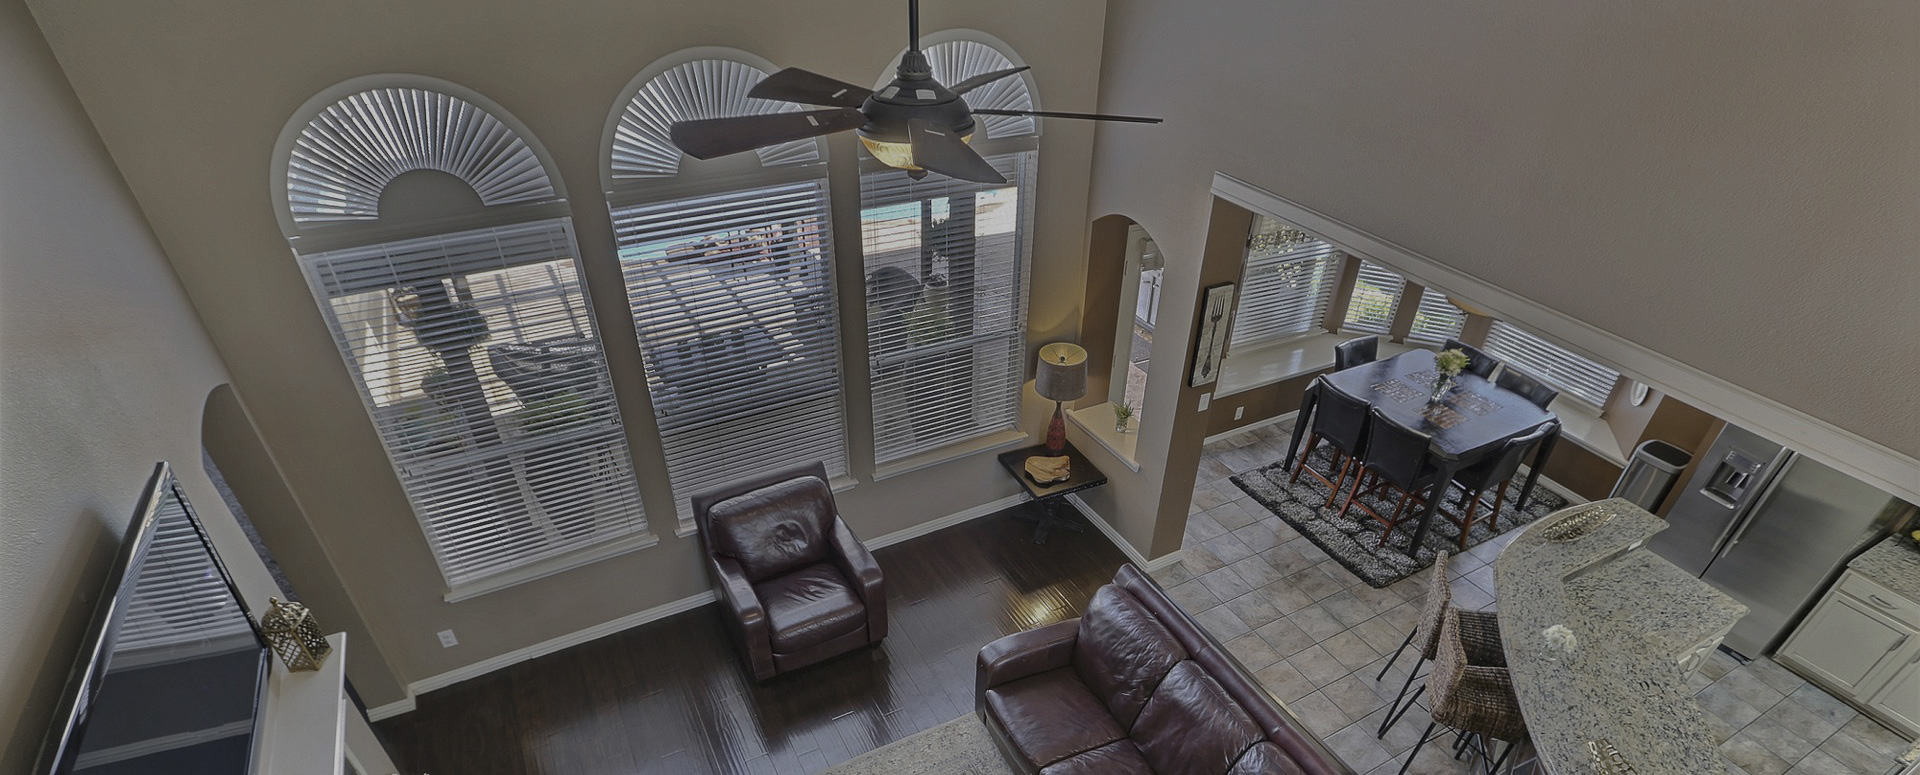 Get inspired. - Find the best ceiling fan for your indoor or outdoor space with our helpful guides.